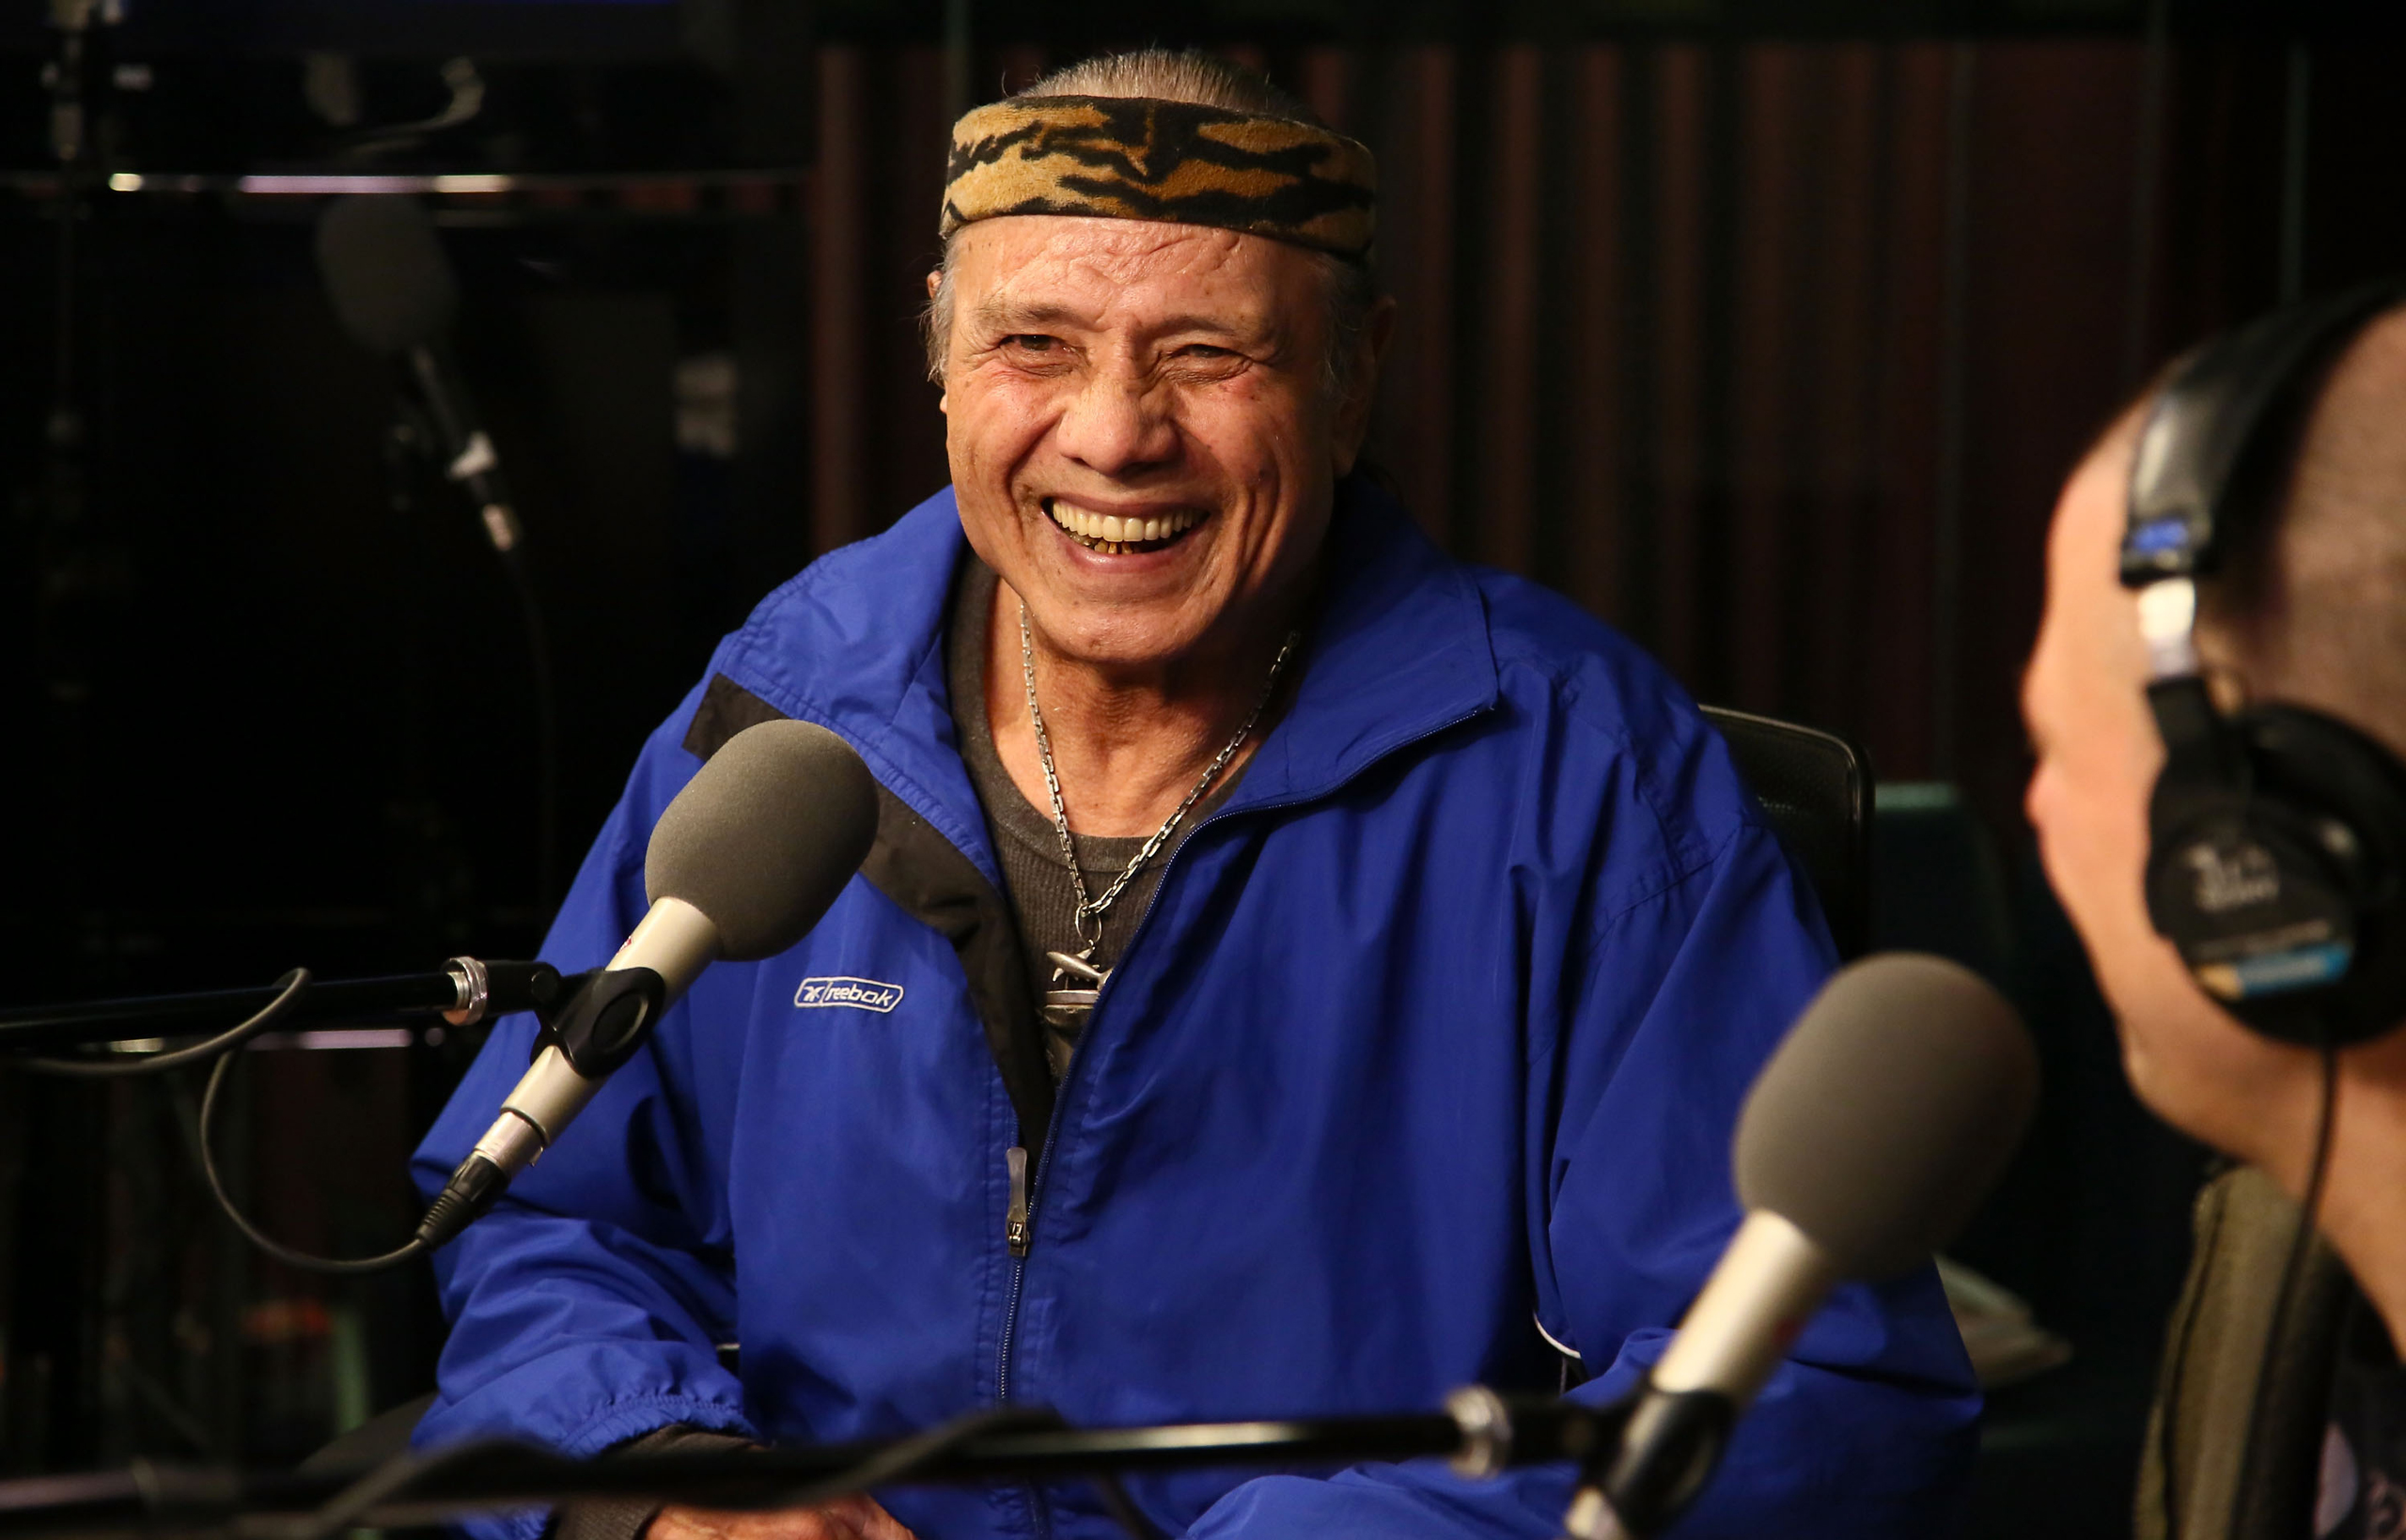 Jimmy  Superfly  Snuka visits  The Opie & Anthony Show  at SiriusXM studios in New York City on Jan. 9, 2013.